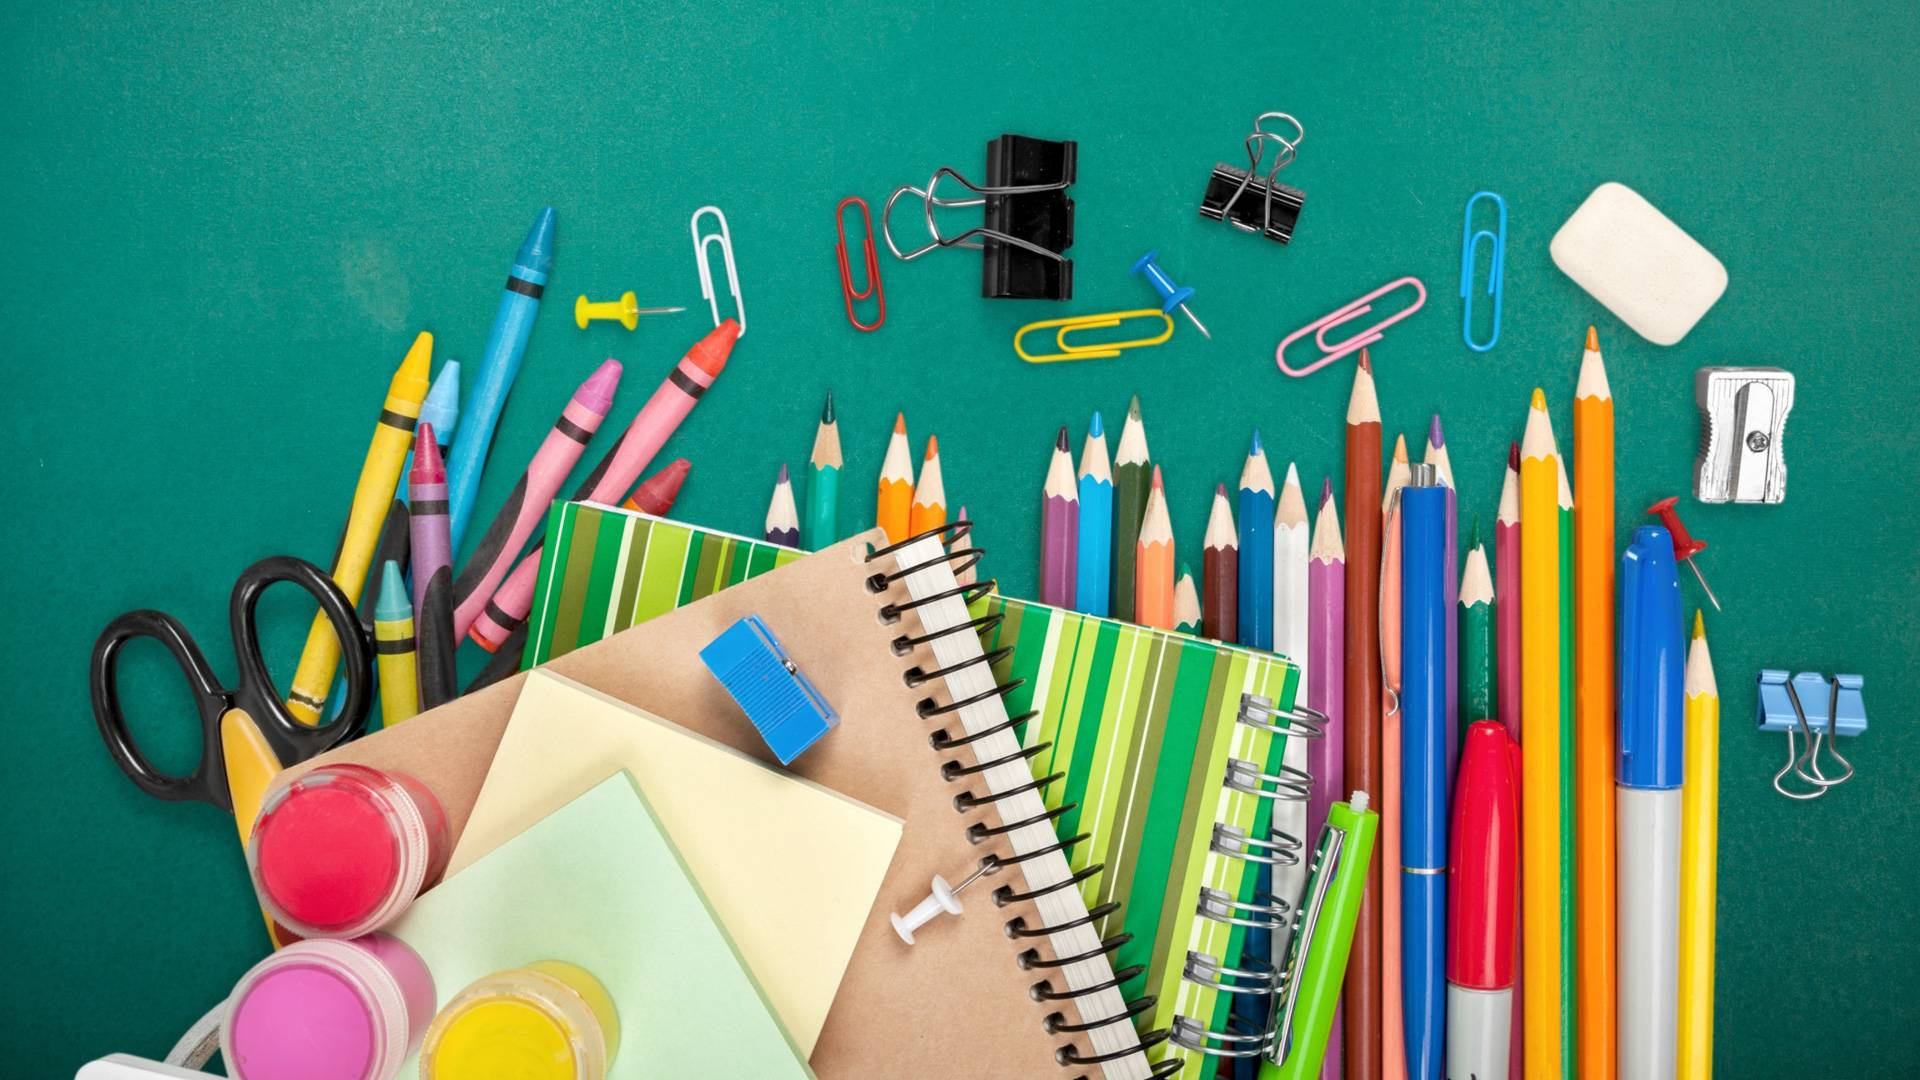 What Makes A Stationery Franchise Successful